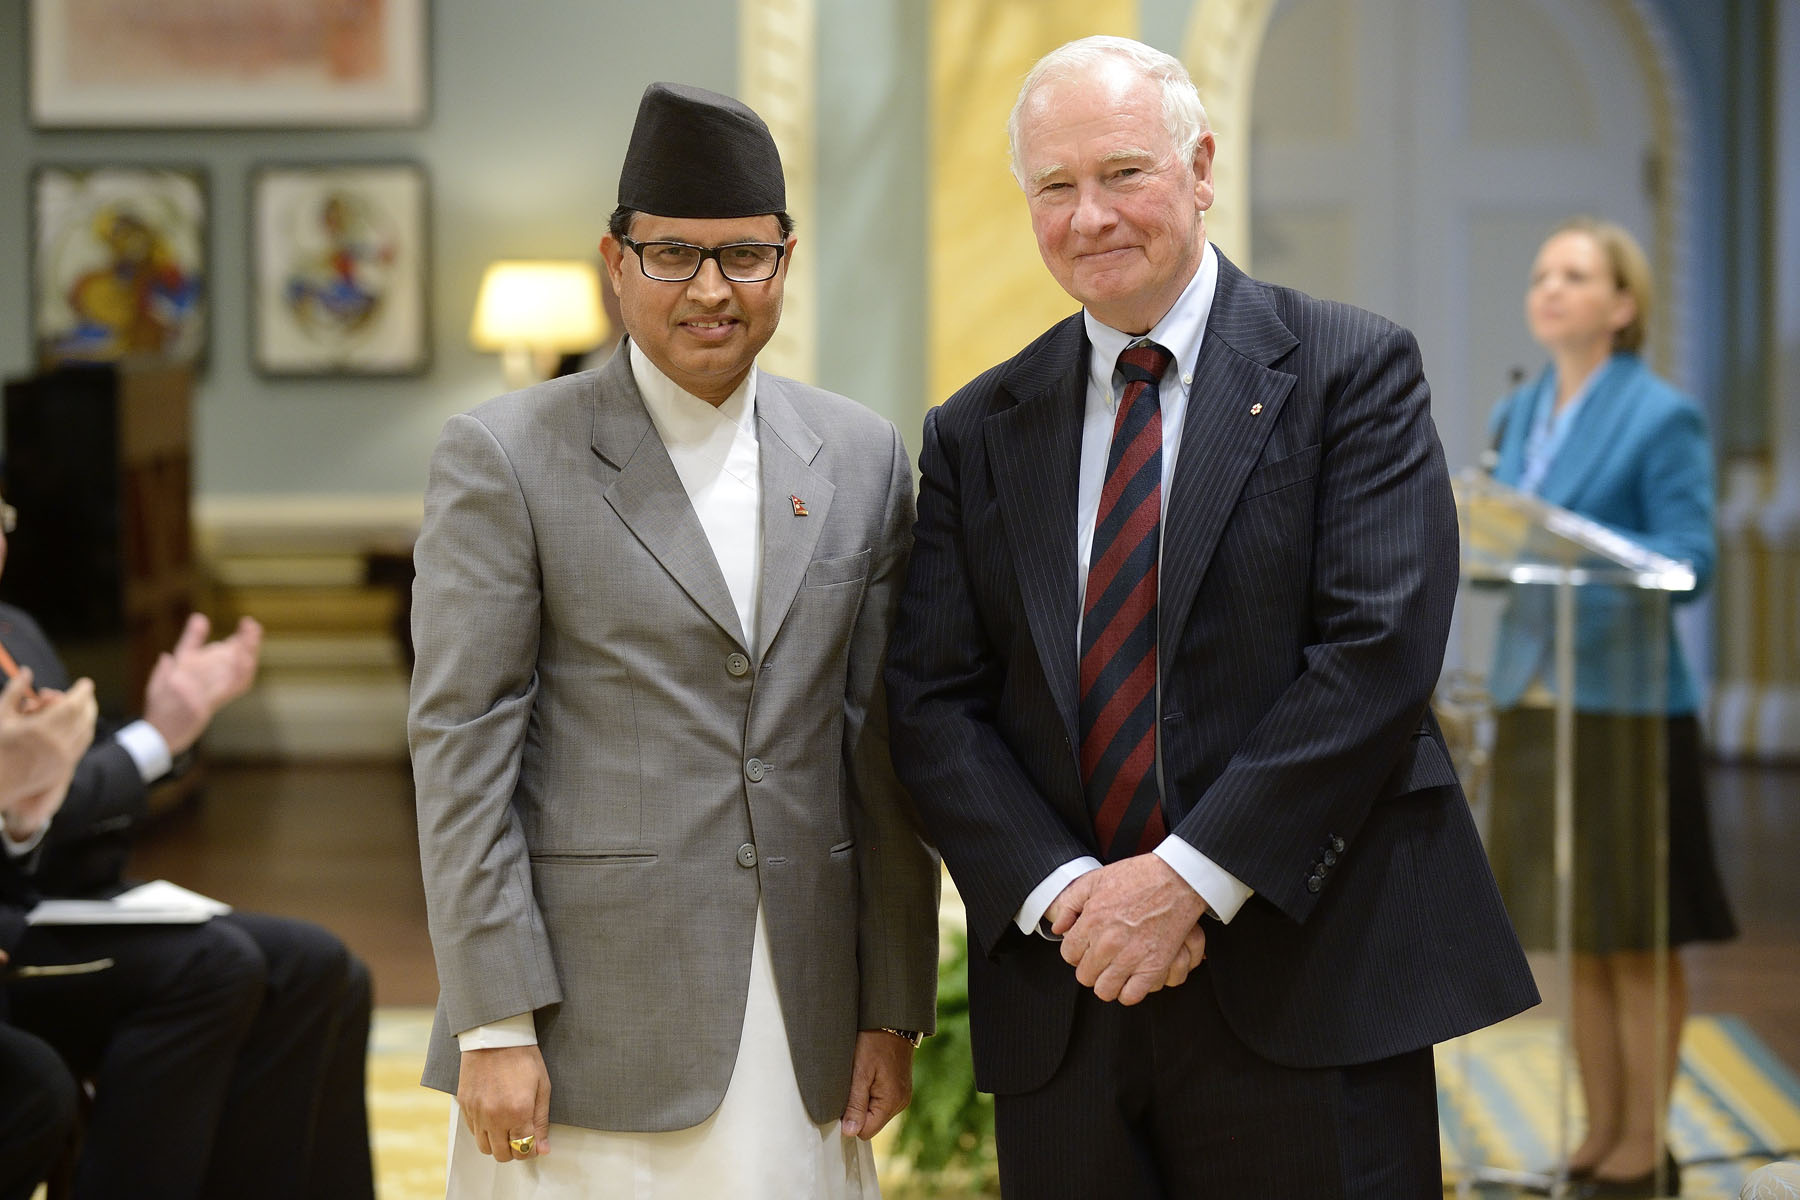 The Governor General then received the letters of credence of His Excellency Kali Prasad Pokhrel, ambassador of the Federal Democratic Republic of Nepal.